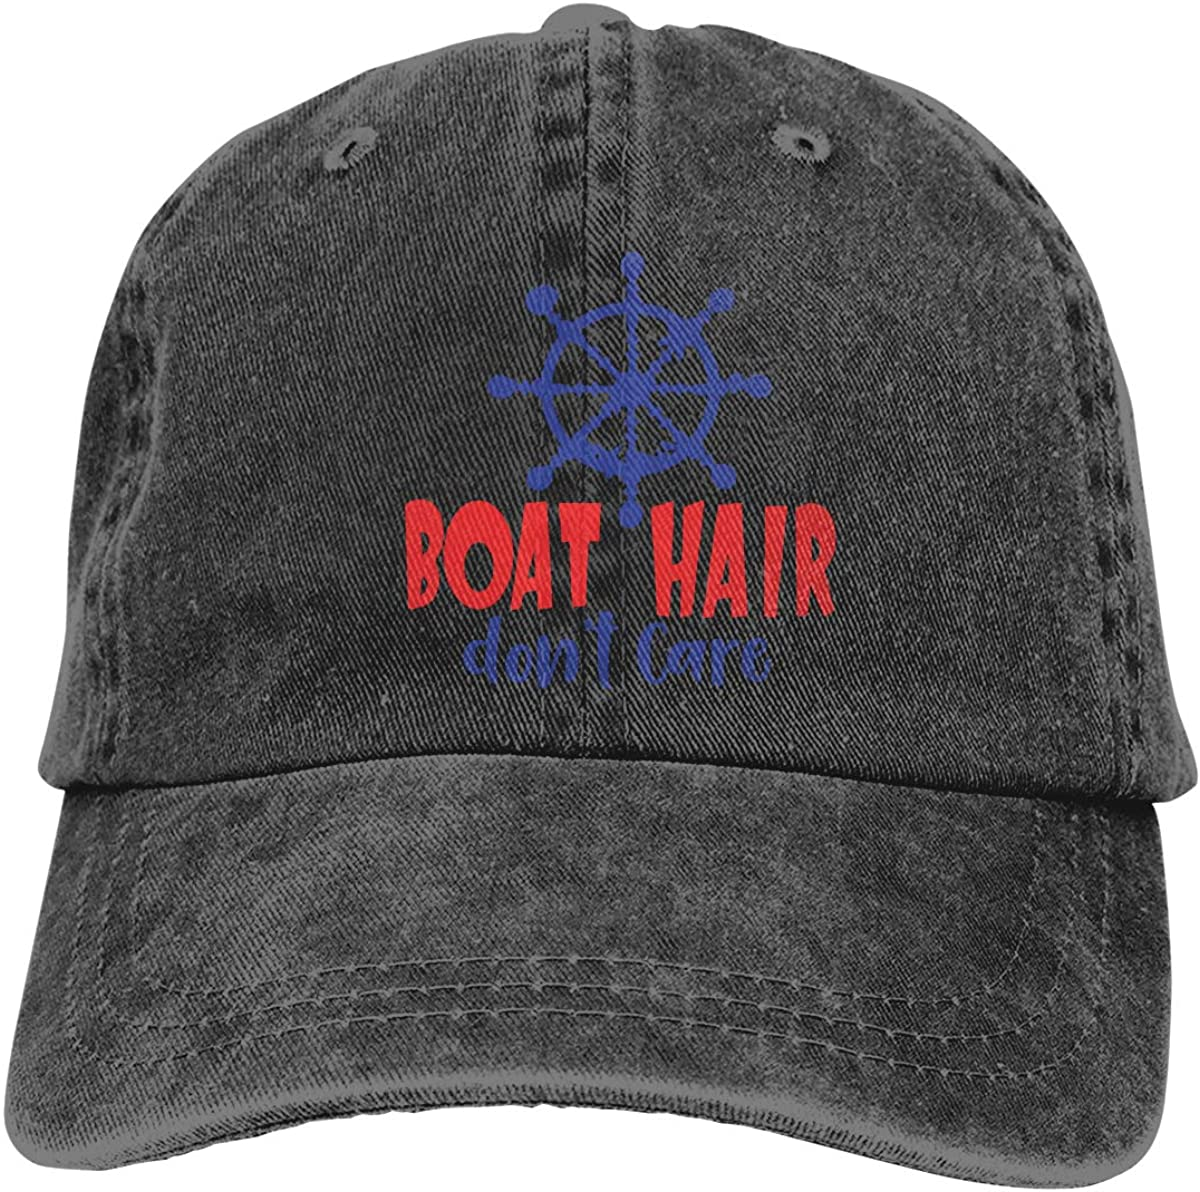 Boat Adult Personalize Cowboy Sun Hat Adjustable Baseball Cap